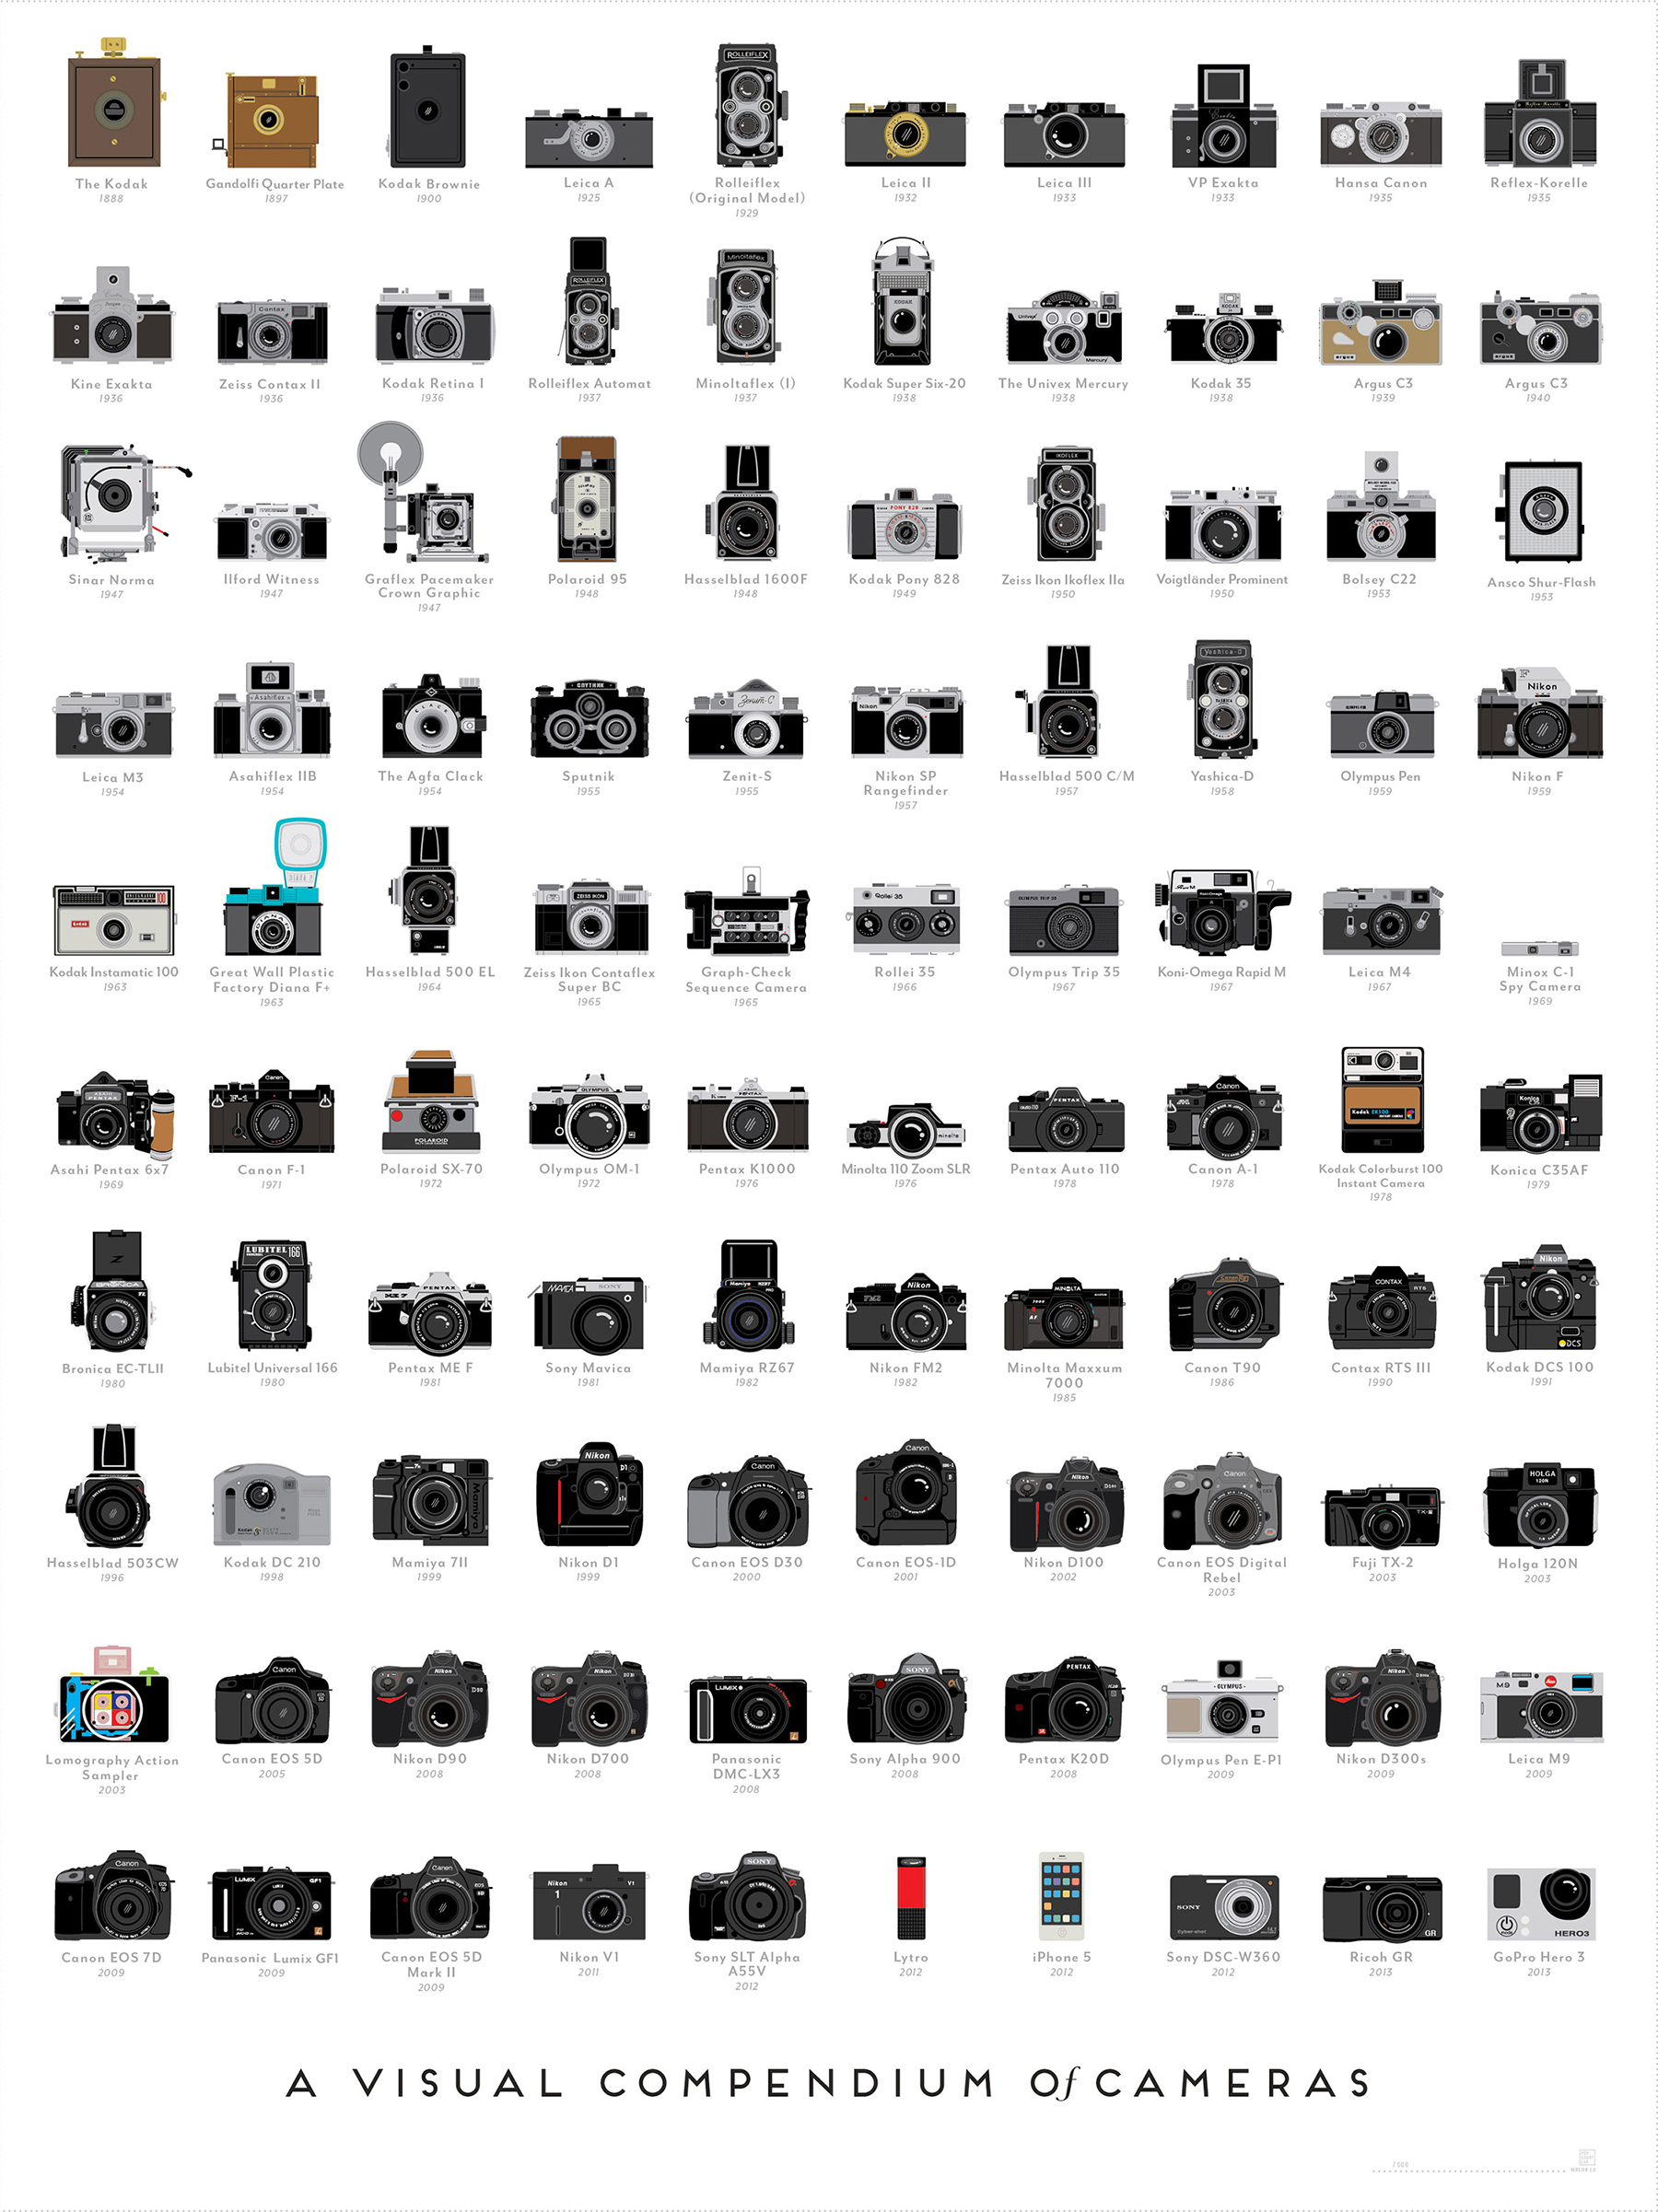 Camera Timelines Over the Years